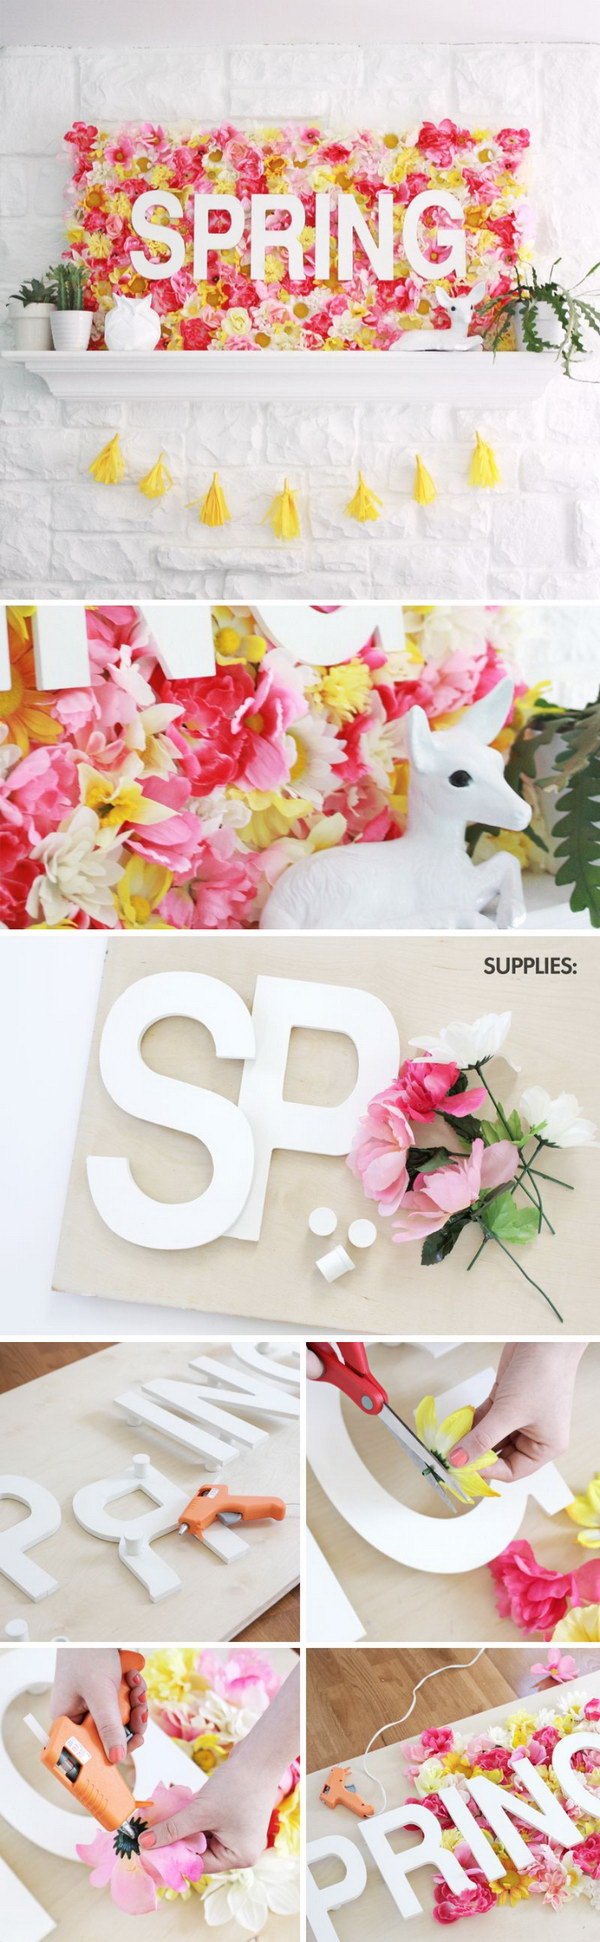 Spring Wallflower Sign. Bring the outdoors inside this spring by making this amazing giant wallflower sign for your mantel decoration.